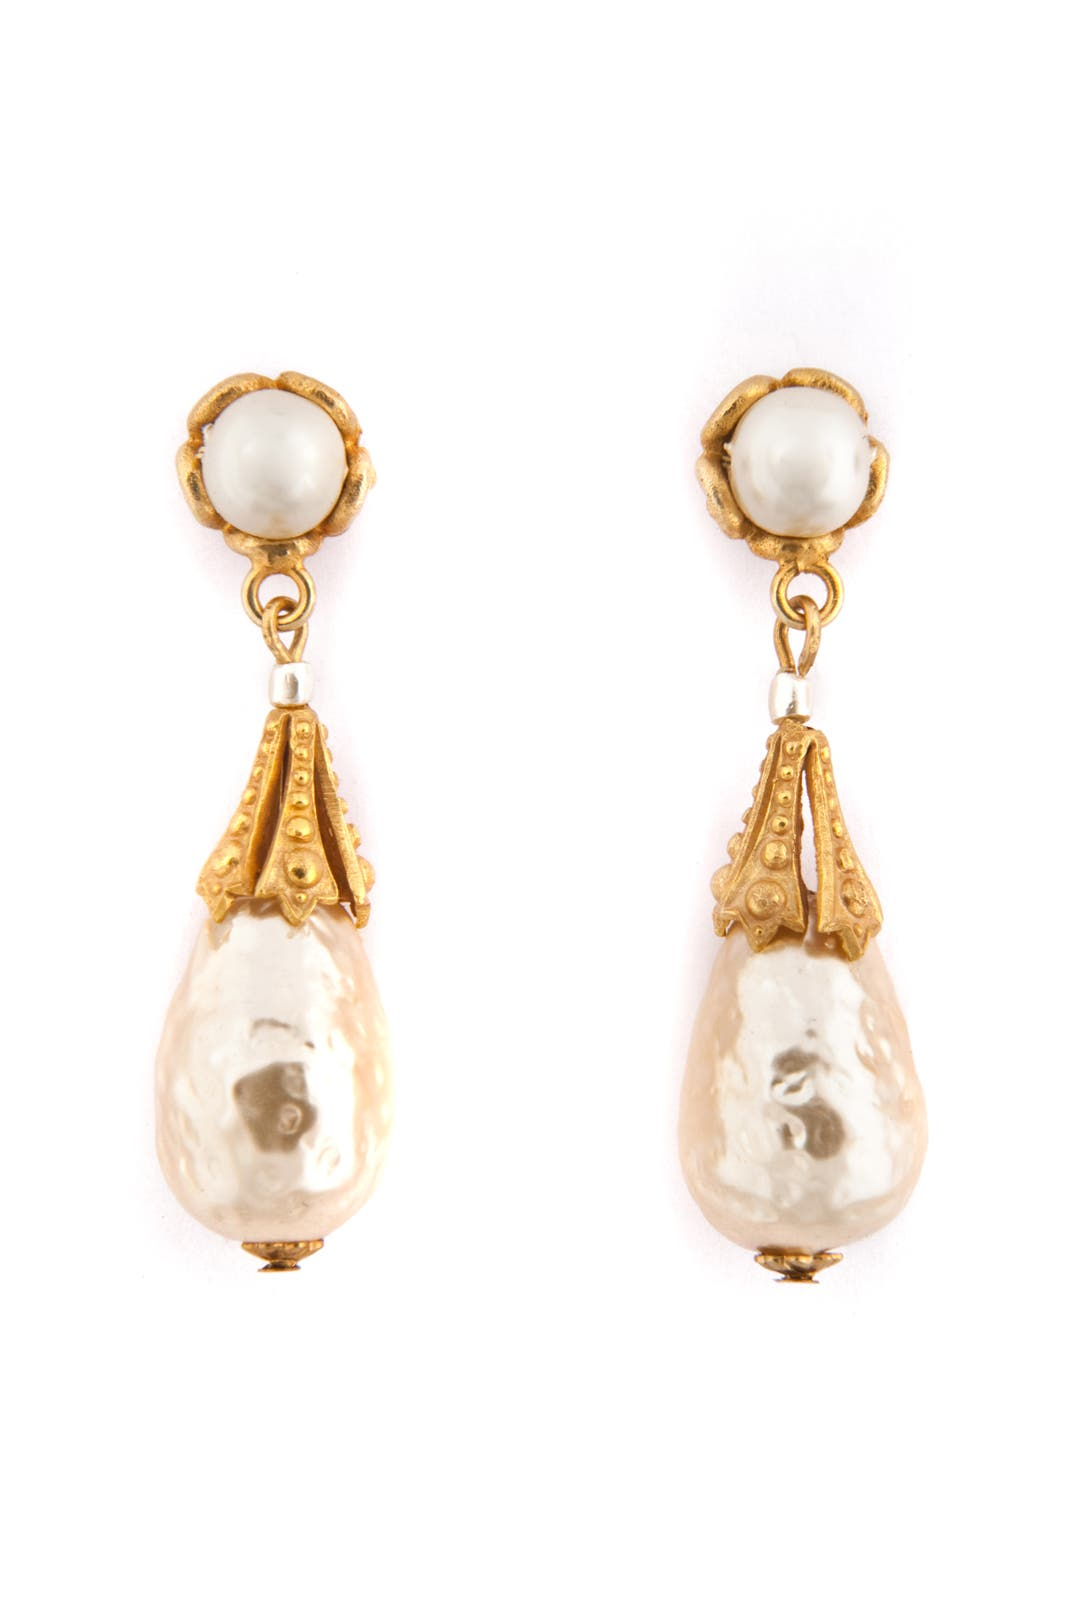 Royal Contessa Earrings by Miriam Haskell